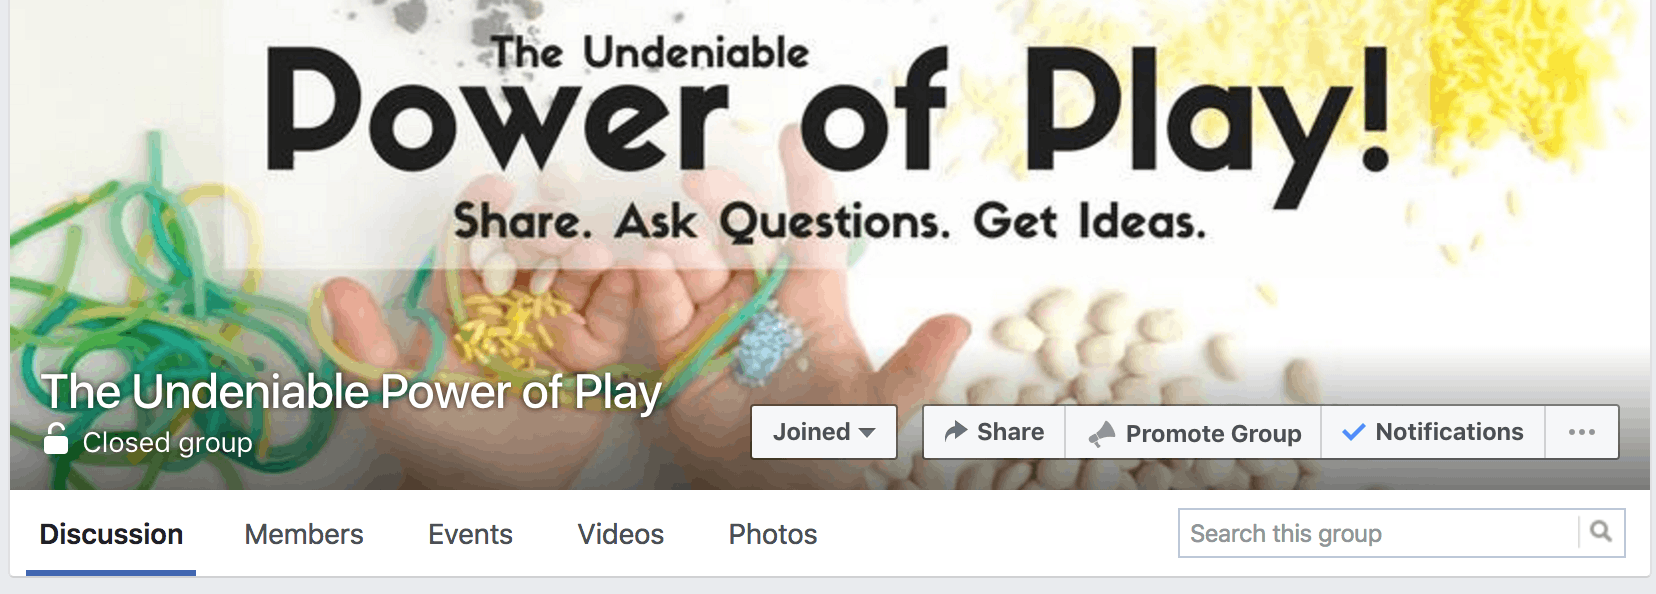 Join the play-based learning instachallenge #PowerofPlay52 on Instagram. Great for early childhood educational ideas, teachers, parents, preschoolers and toddlers